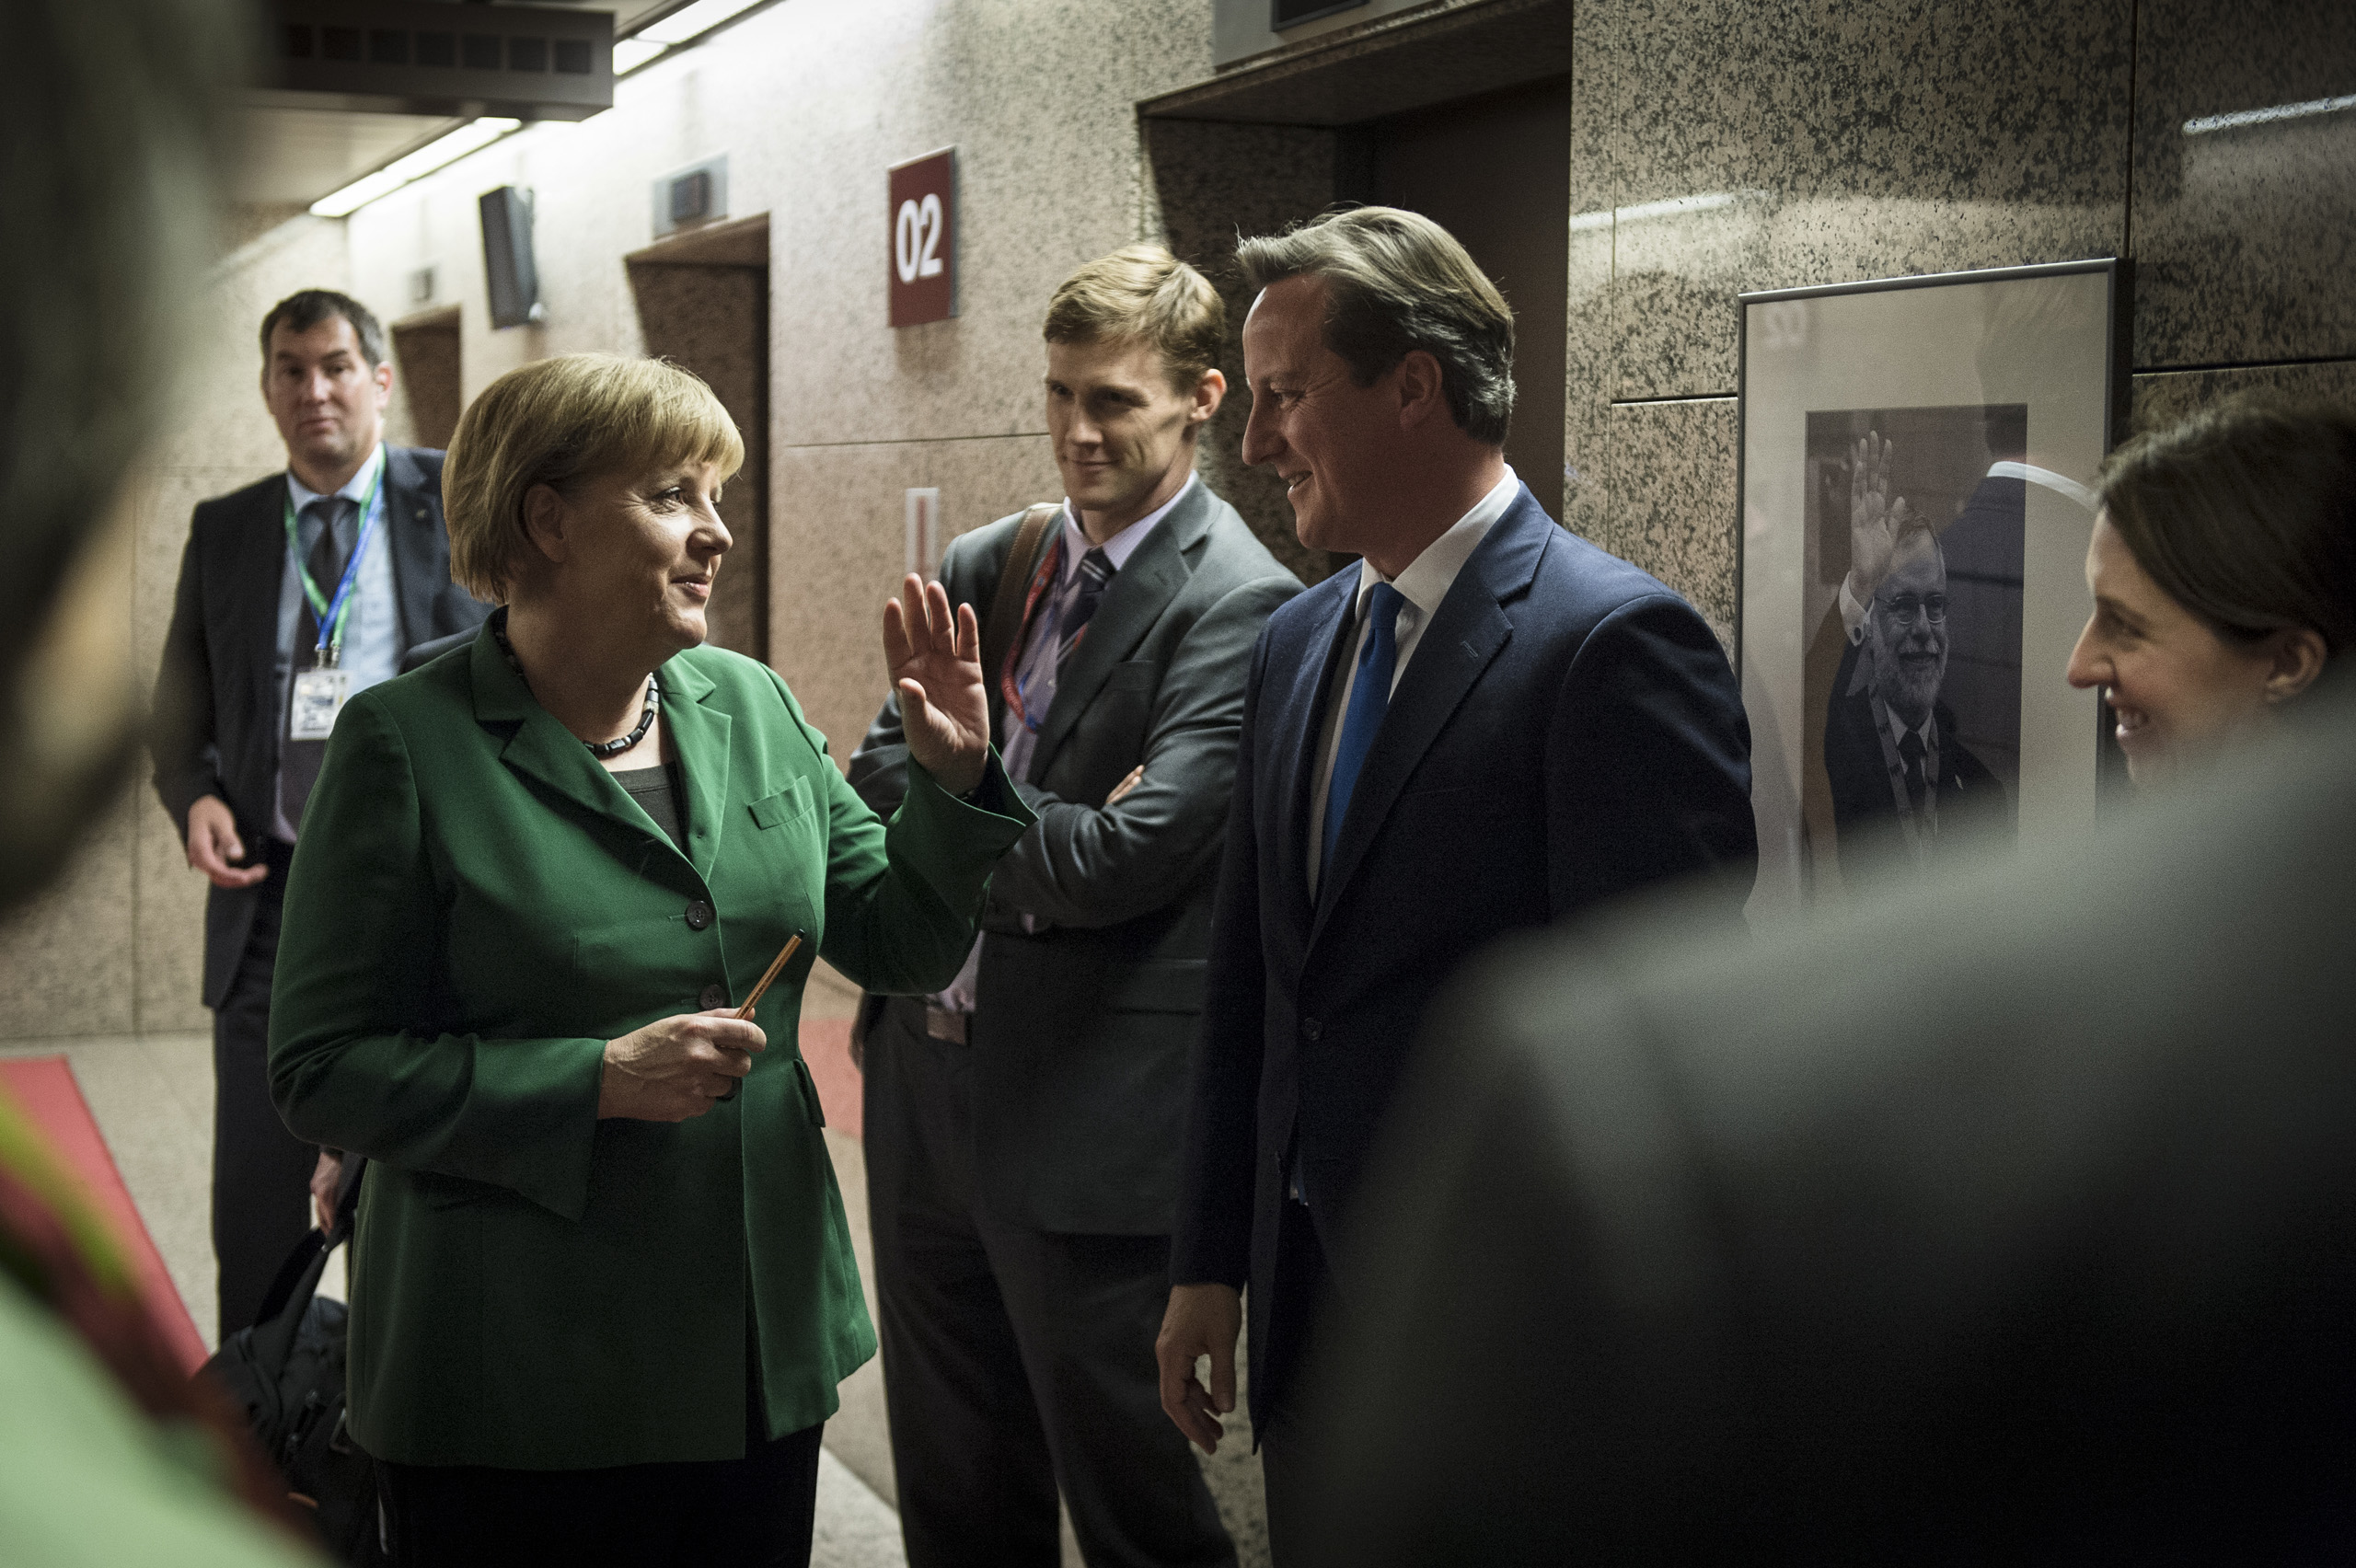 Chancellor Merkel and British Prime Minister David Cameron joke as they wait for their elevators after a European Council meeting in Brussels. Oct. 19, 2012.